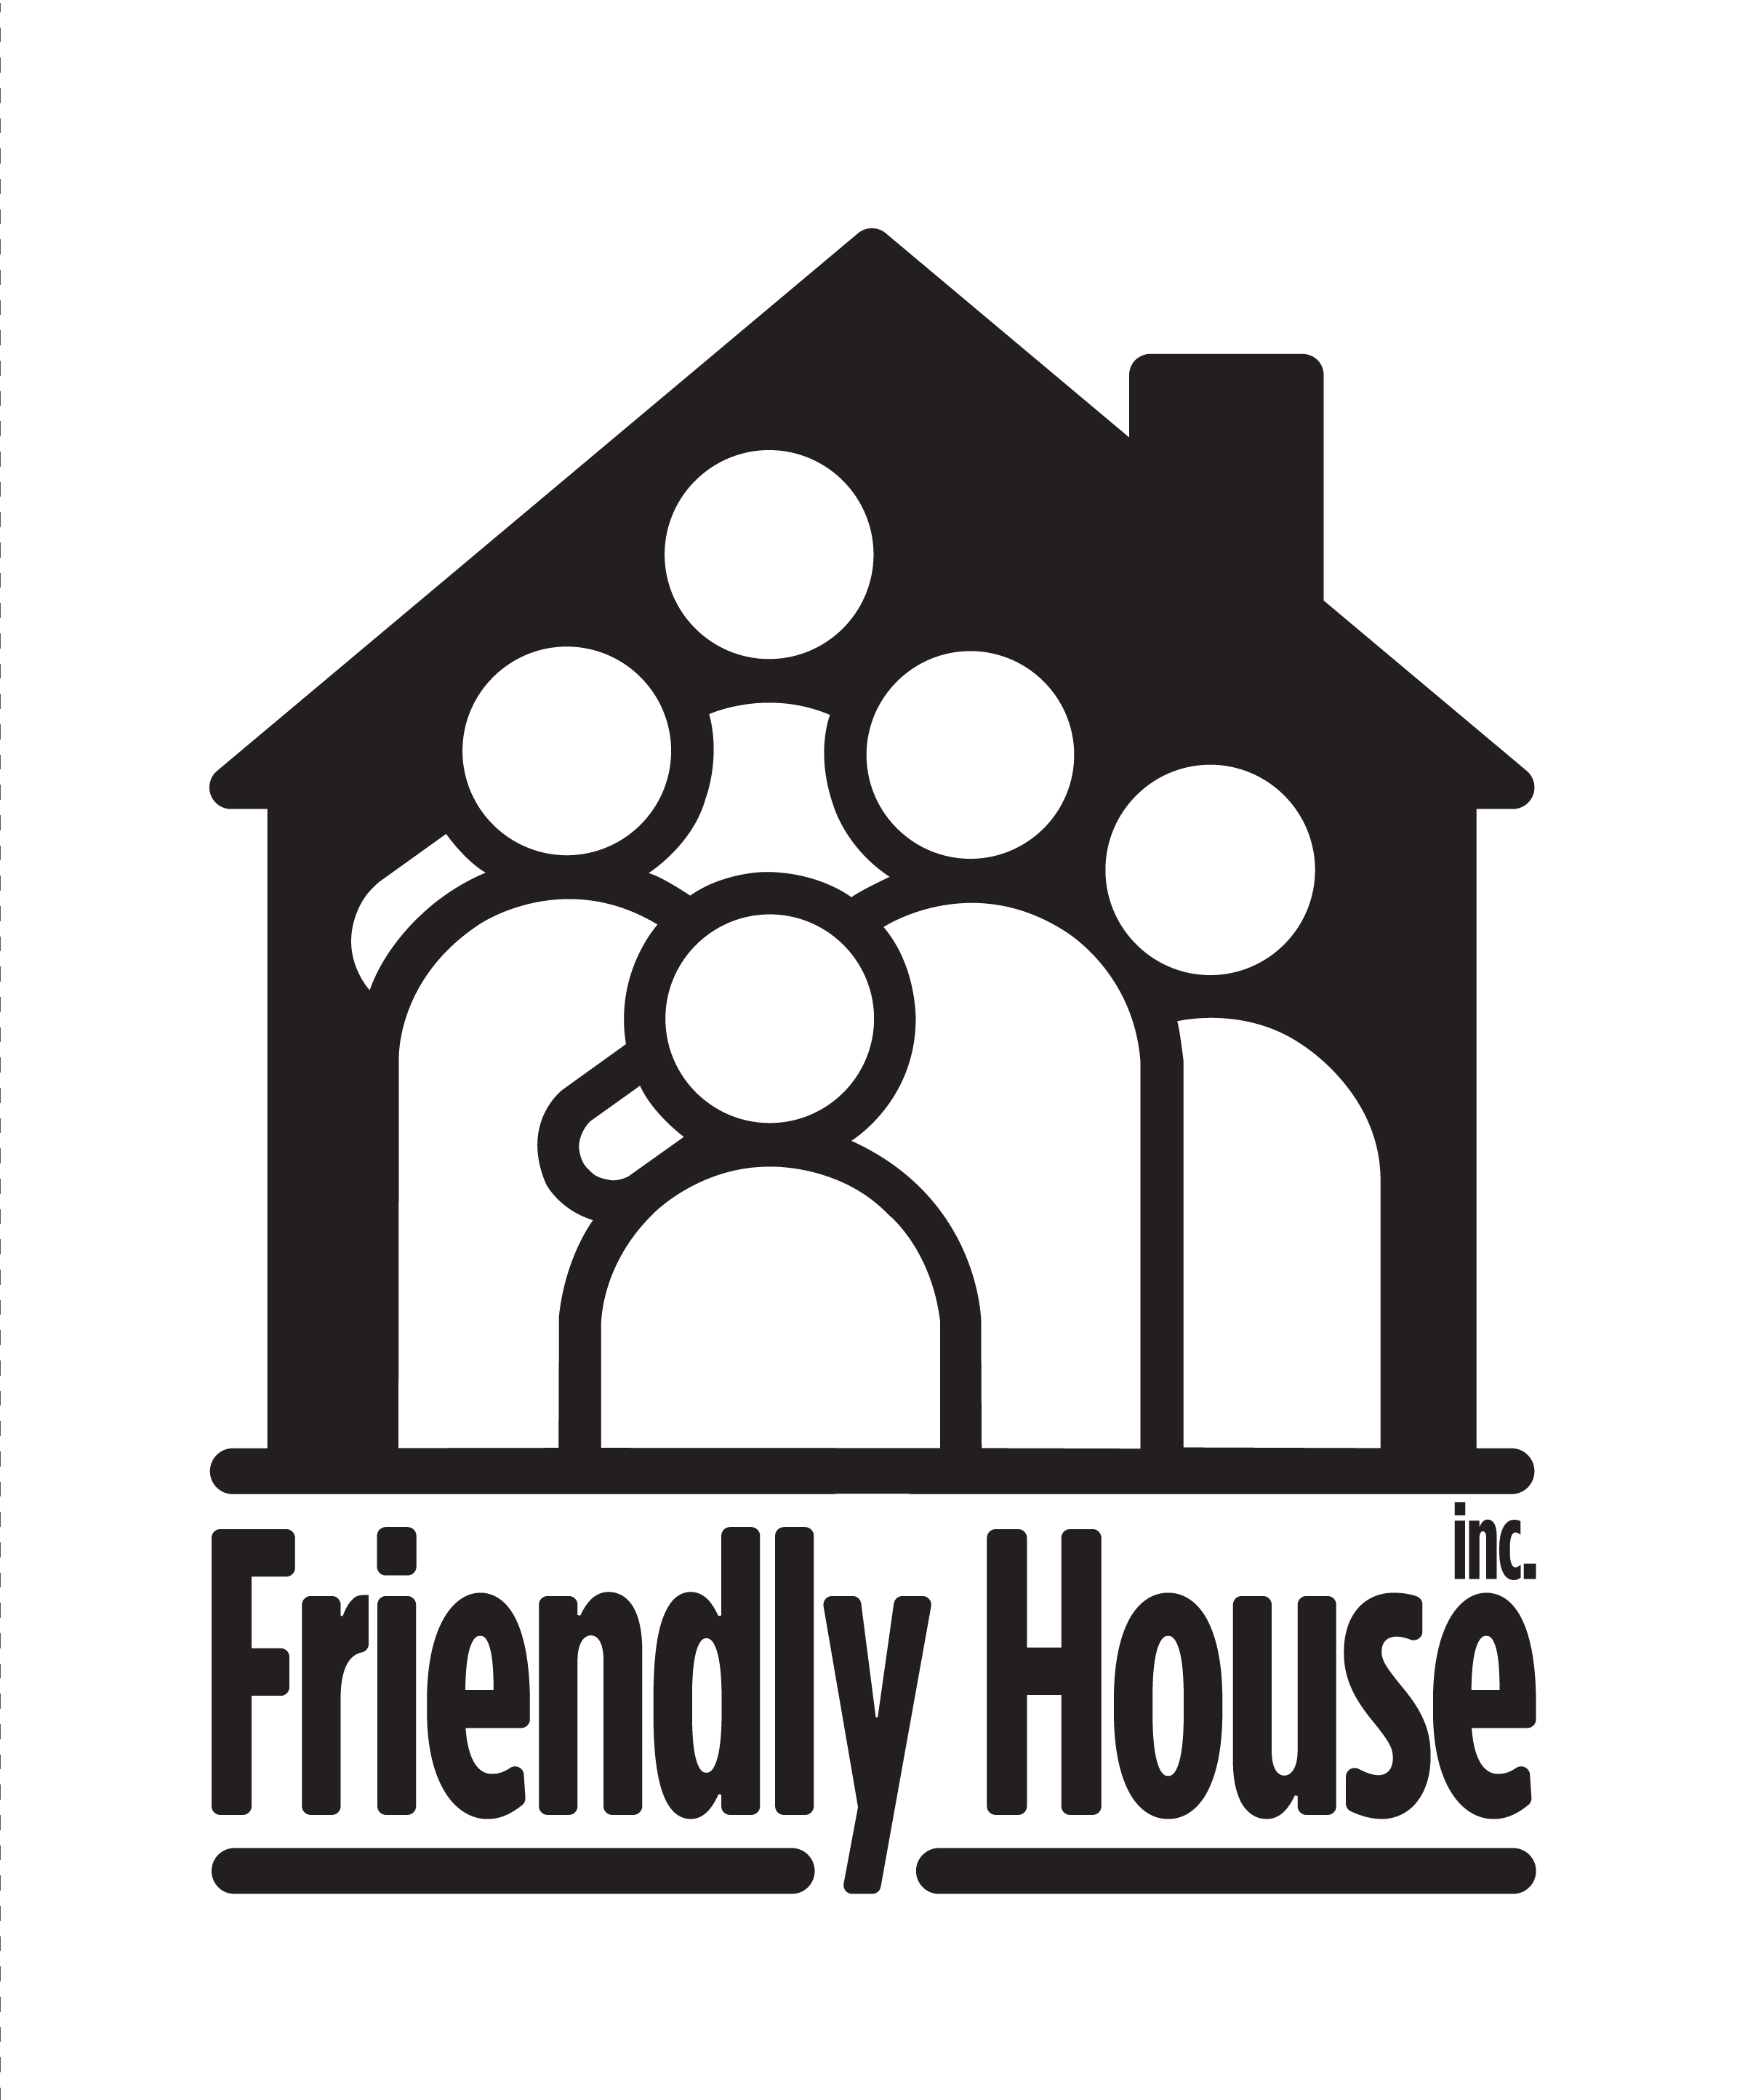 Friendly House Inc Online Payment